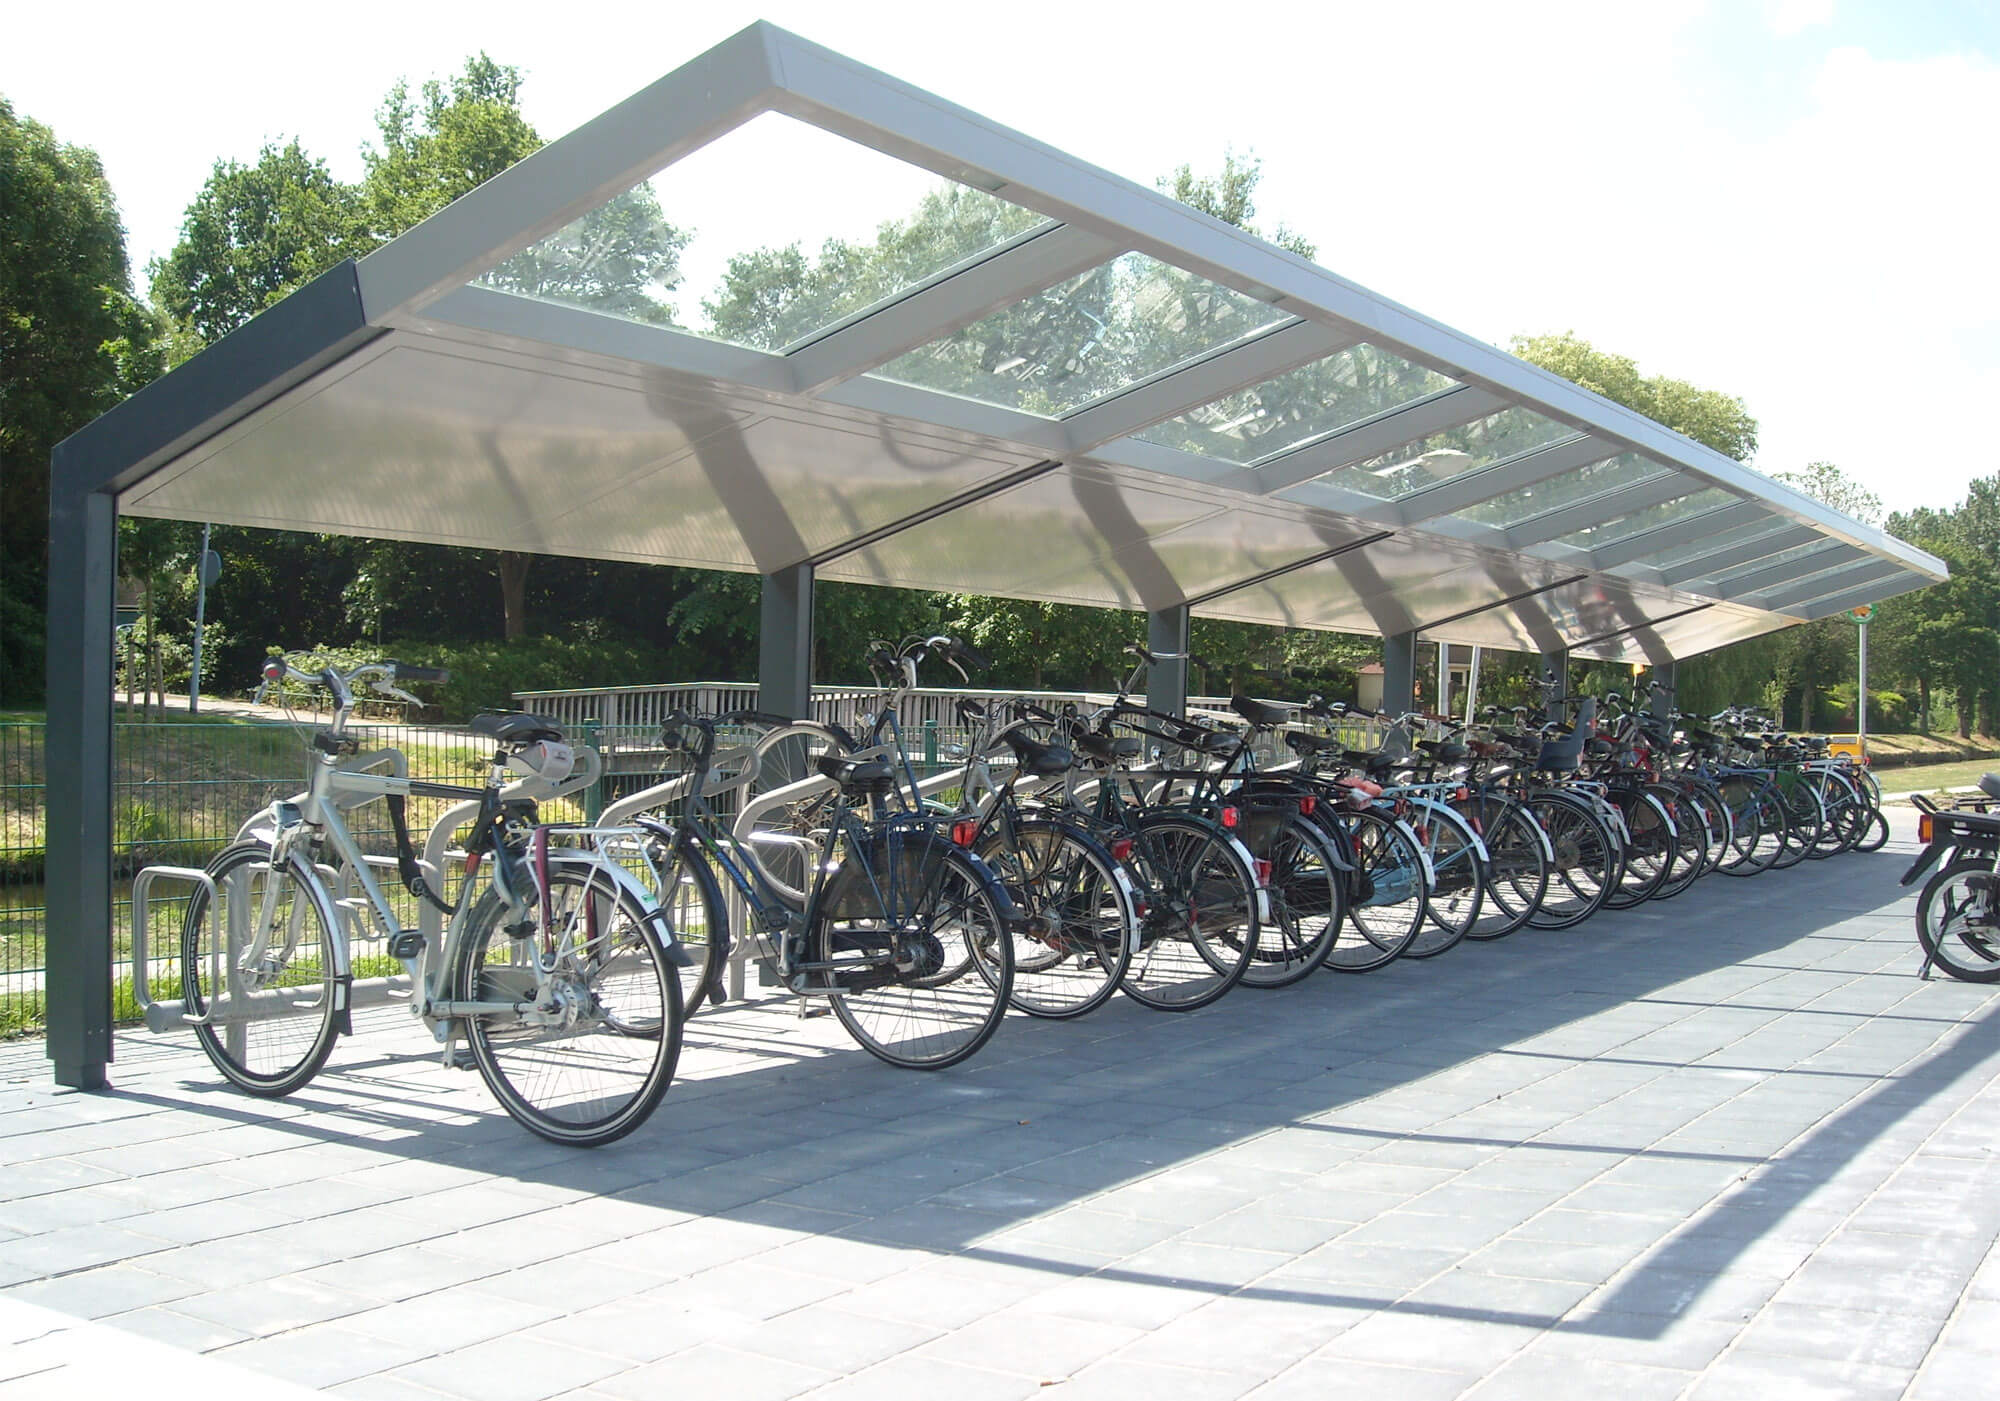 R-Net bicyble parking shelter